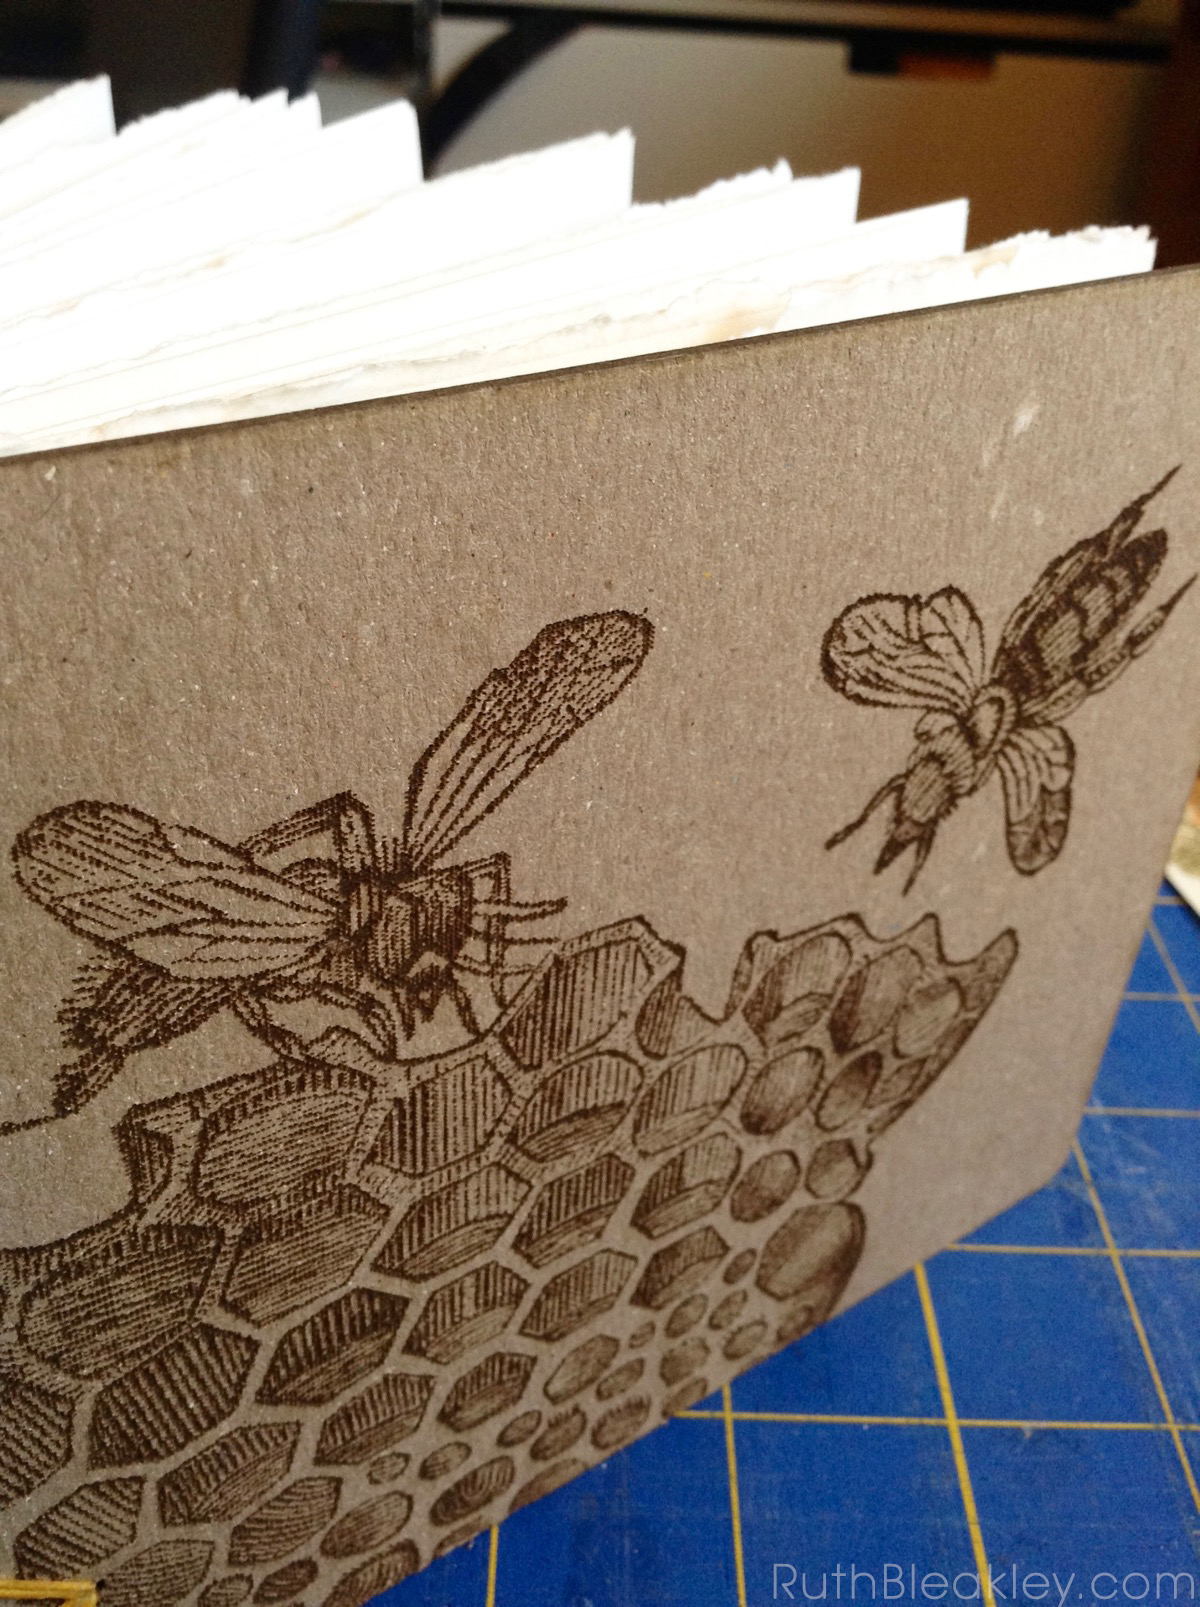 Honeybee Watercolor Sketchbook handmade by Ruth Bleakley with laser engraved cover - 6